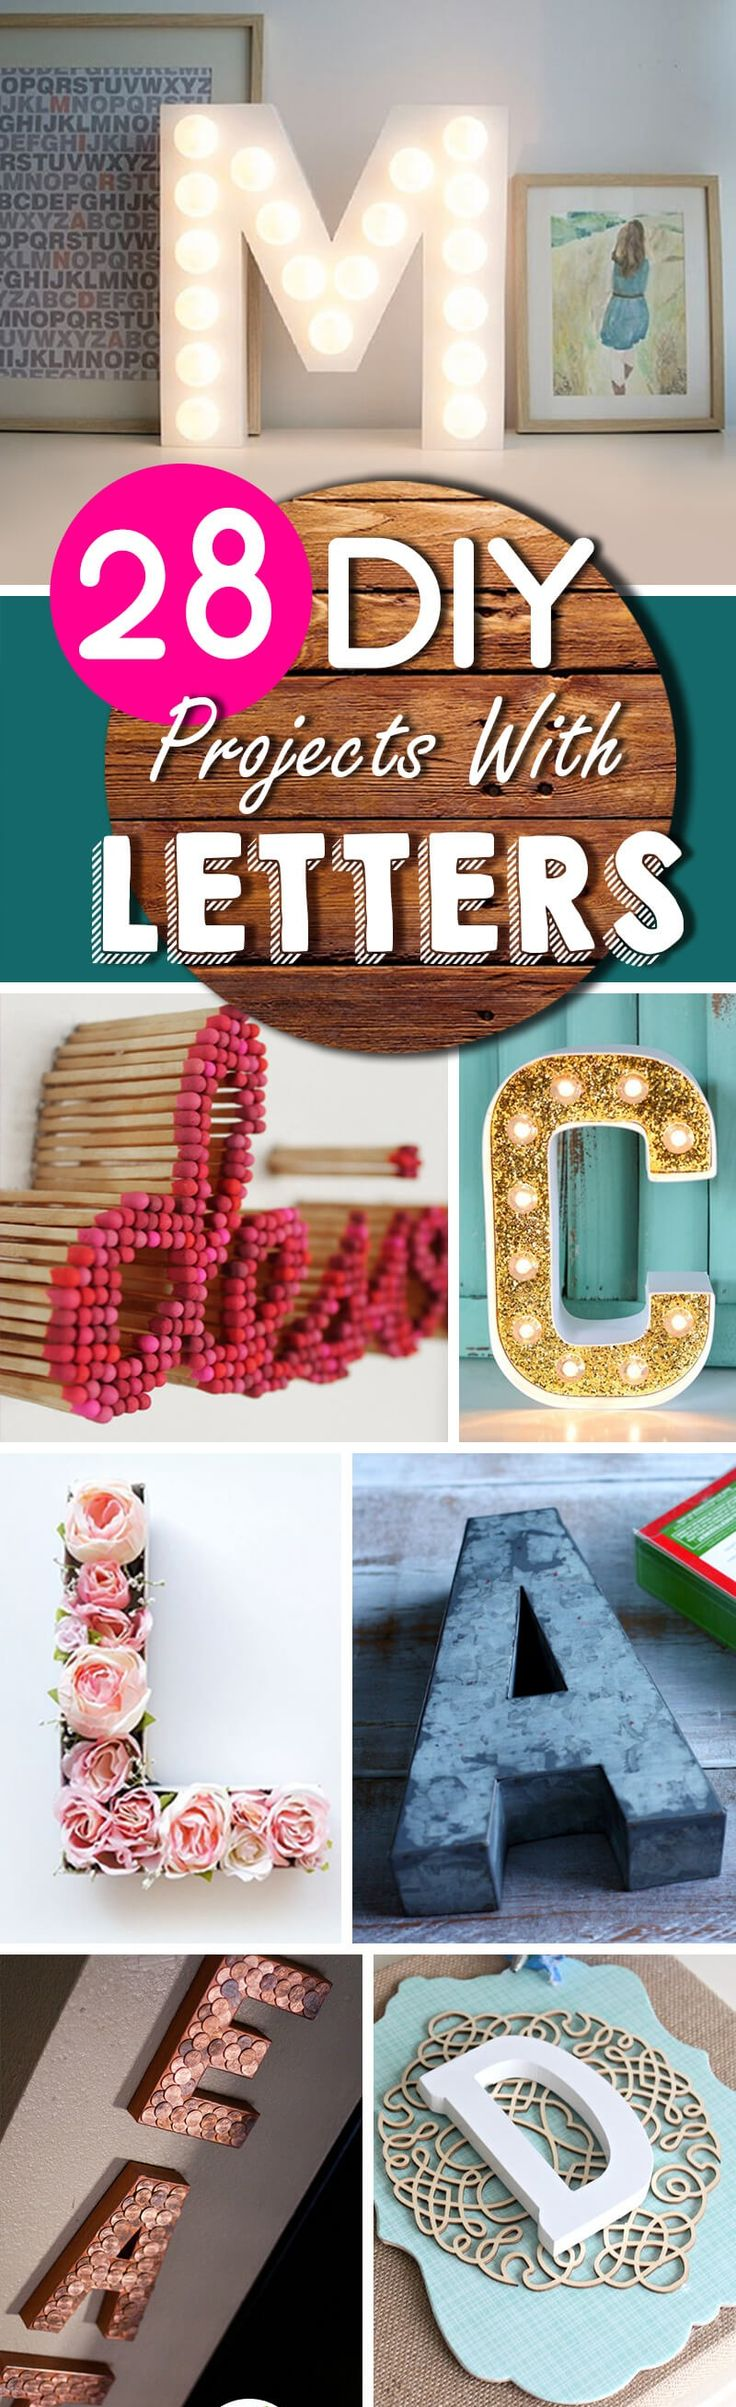 We're always looking for ways to add style to our homes without breaking the bank. One simple way to do this is by adding decorative letters to your design. Word art is all the rage right now and it's easy to see why! Whether your style is classic, modern, or funky, monograms or phrases are the ...